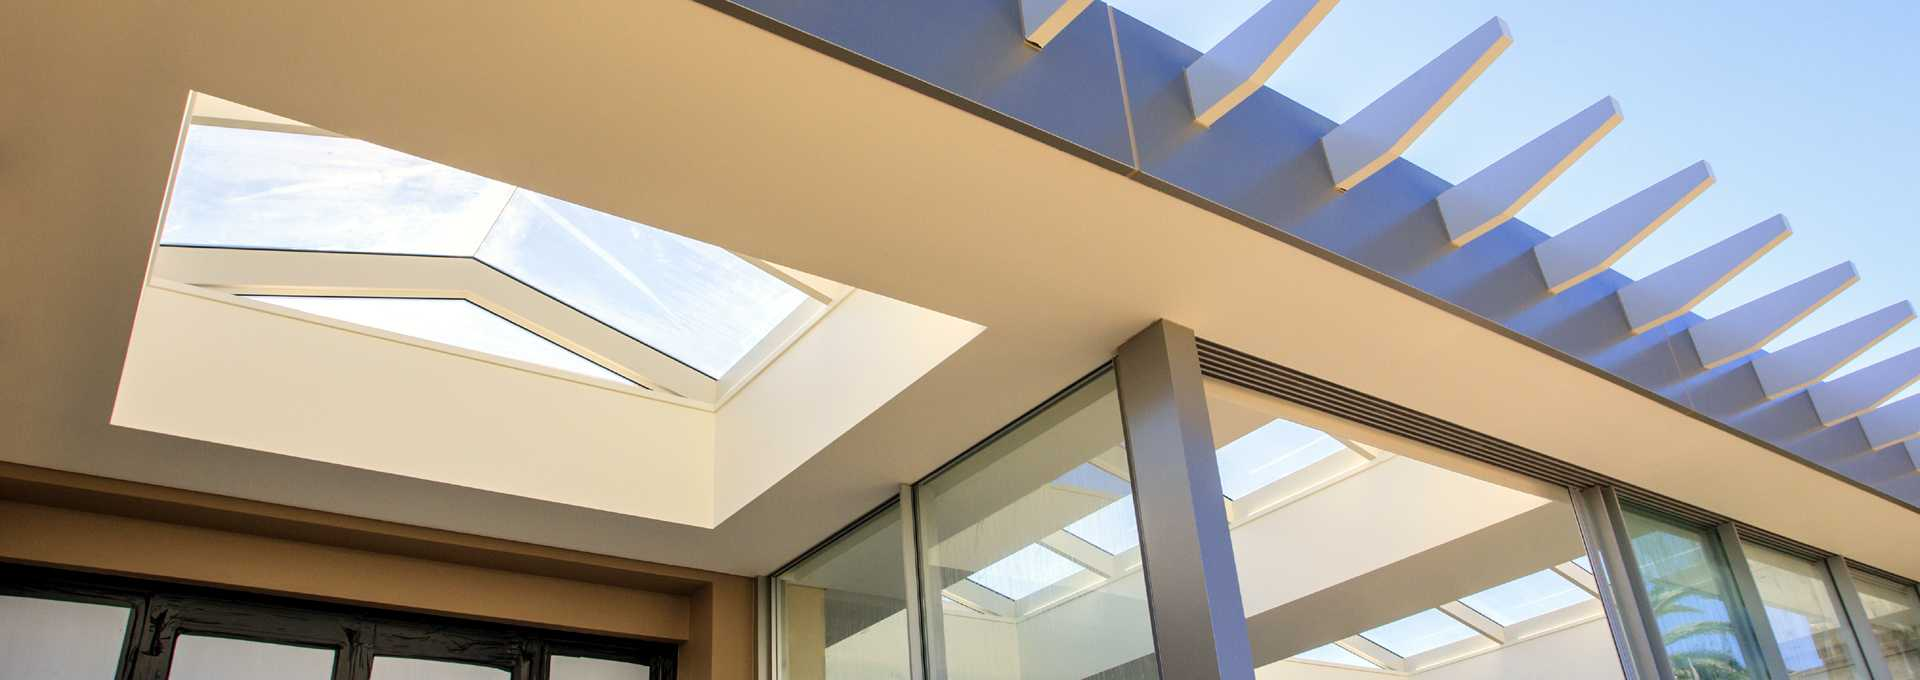 Skylights in a Sydney house